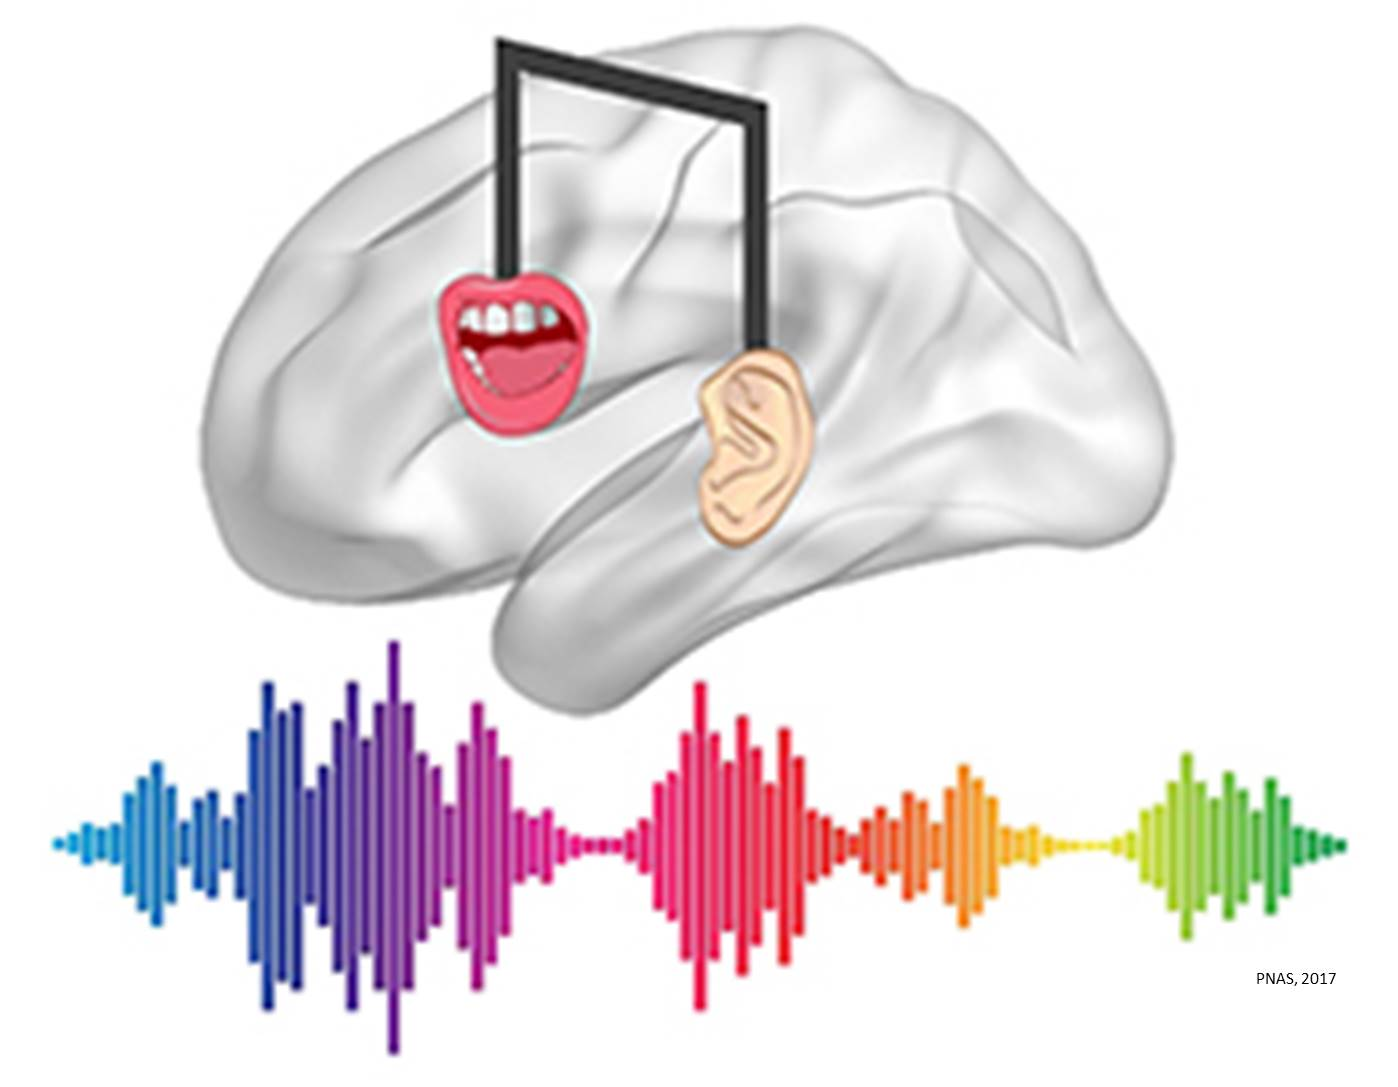 Musical training and speech processing